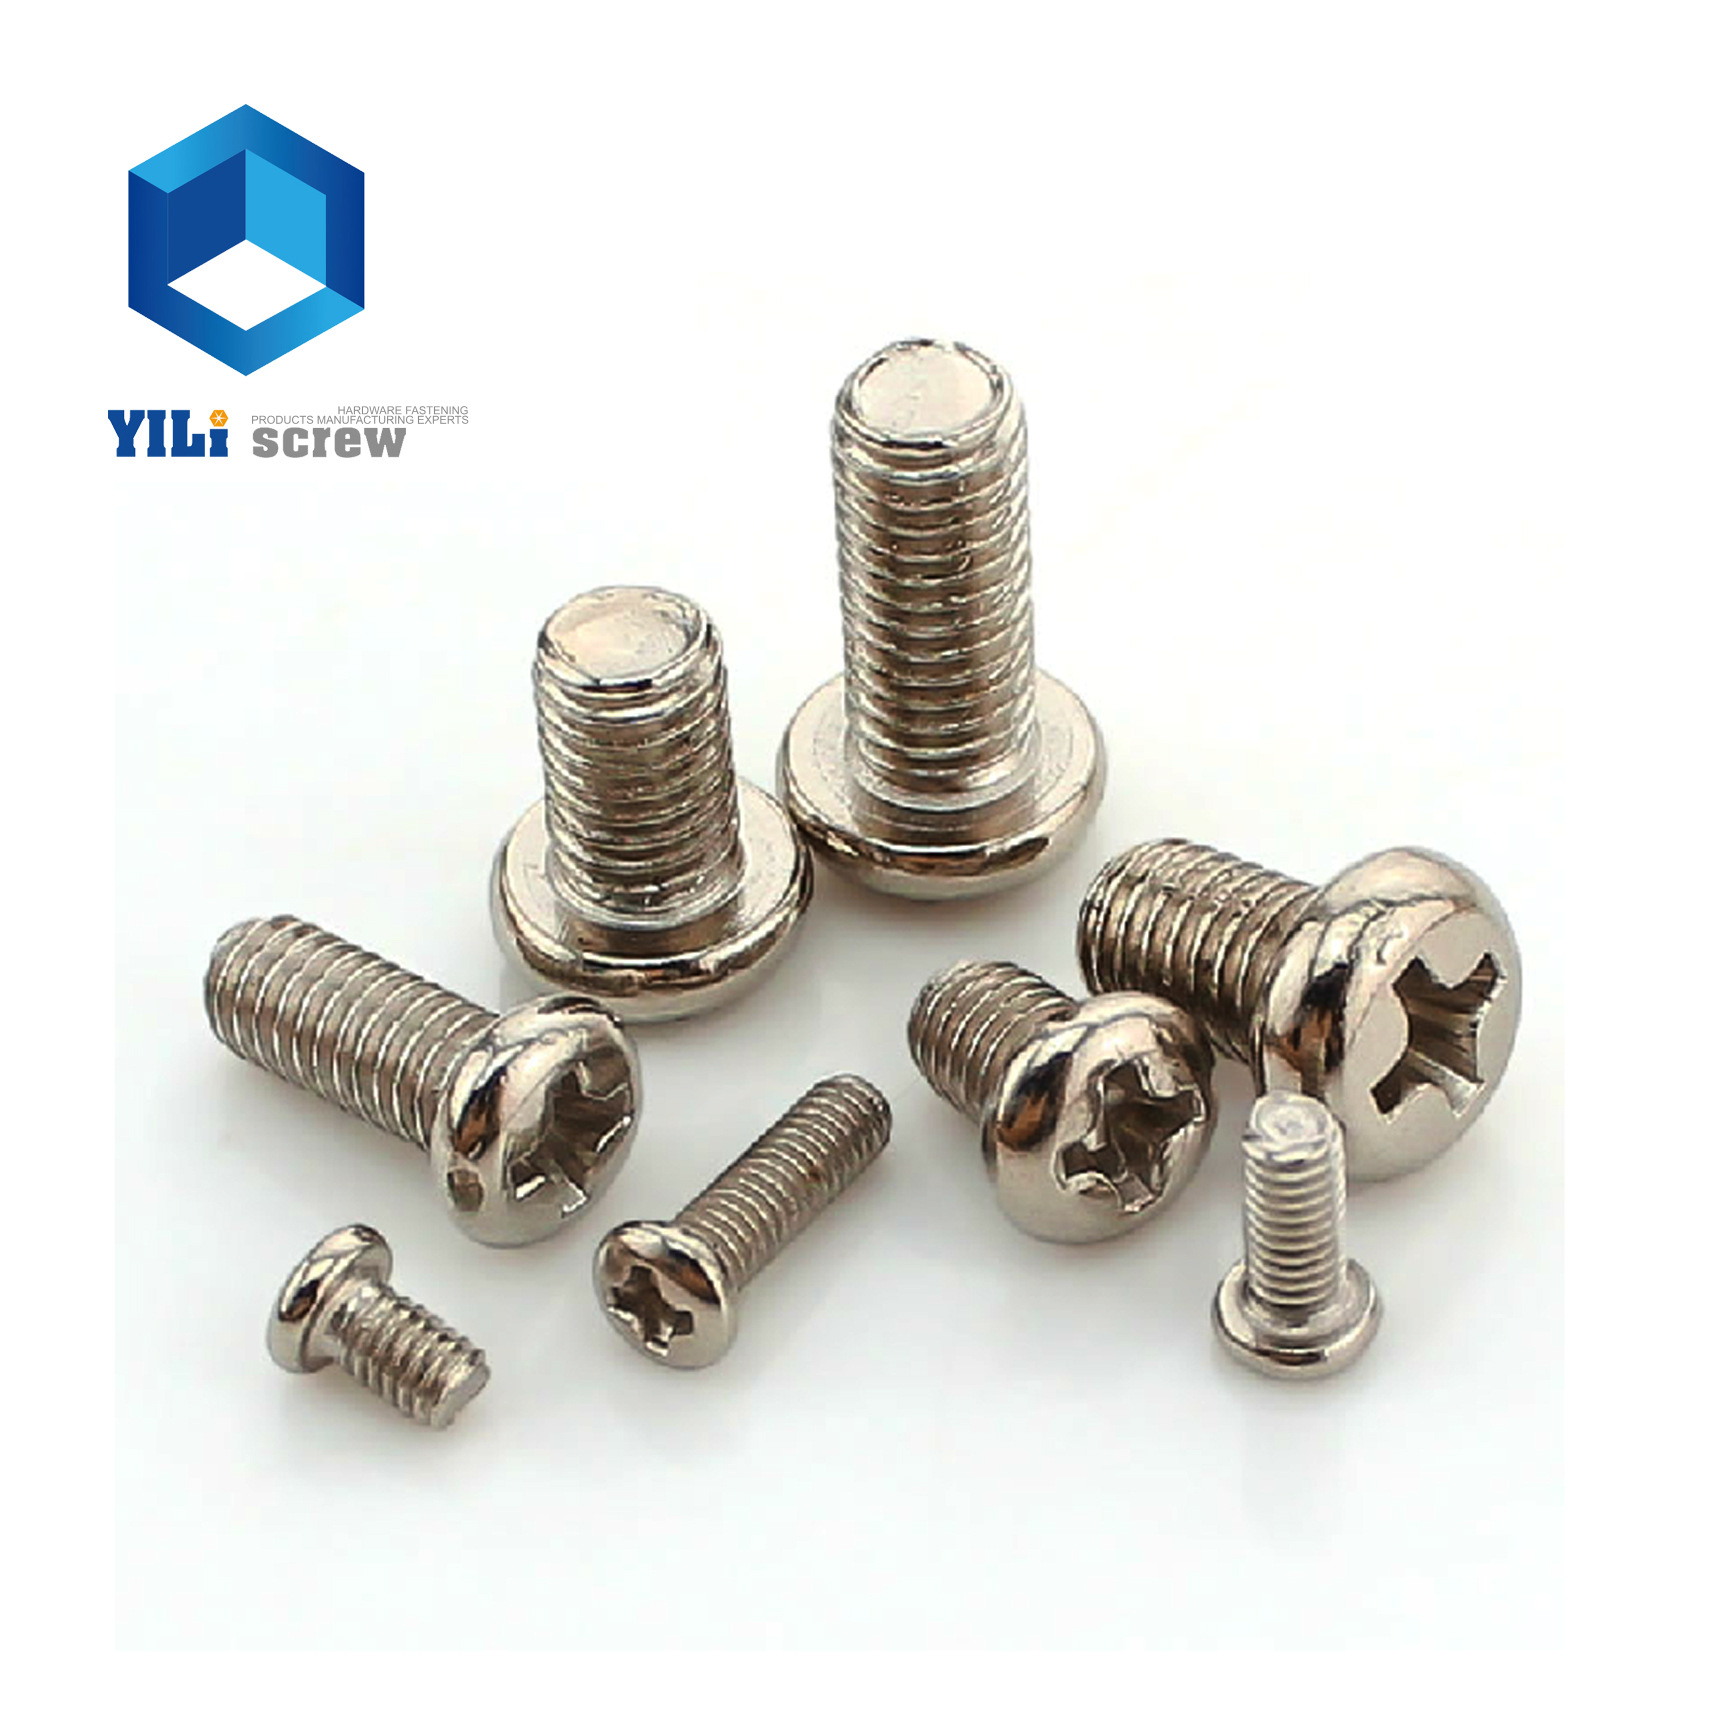 YILI Micro screw PM cross recessed pan head round head machine screw Yuan machine M3 M3.5